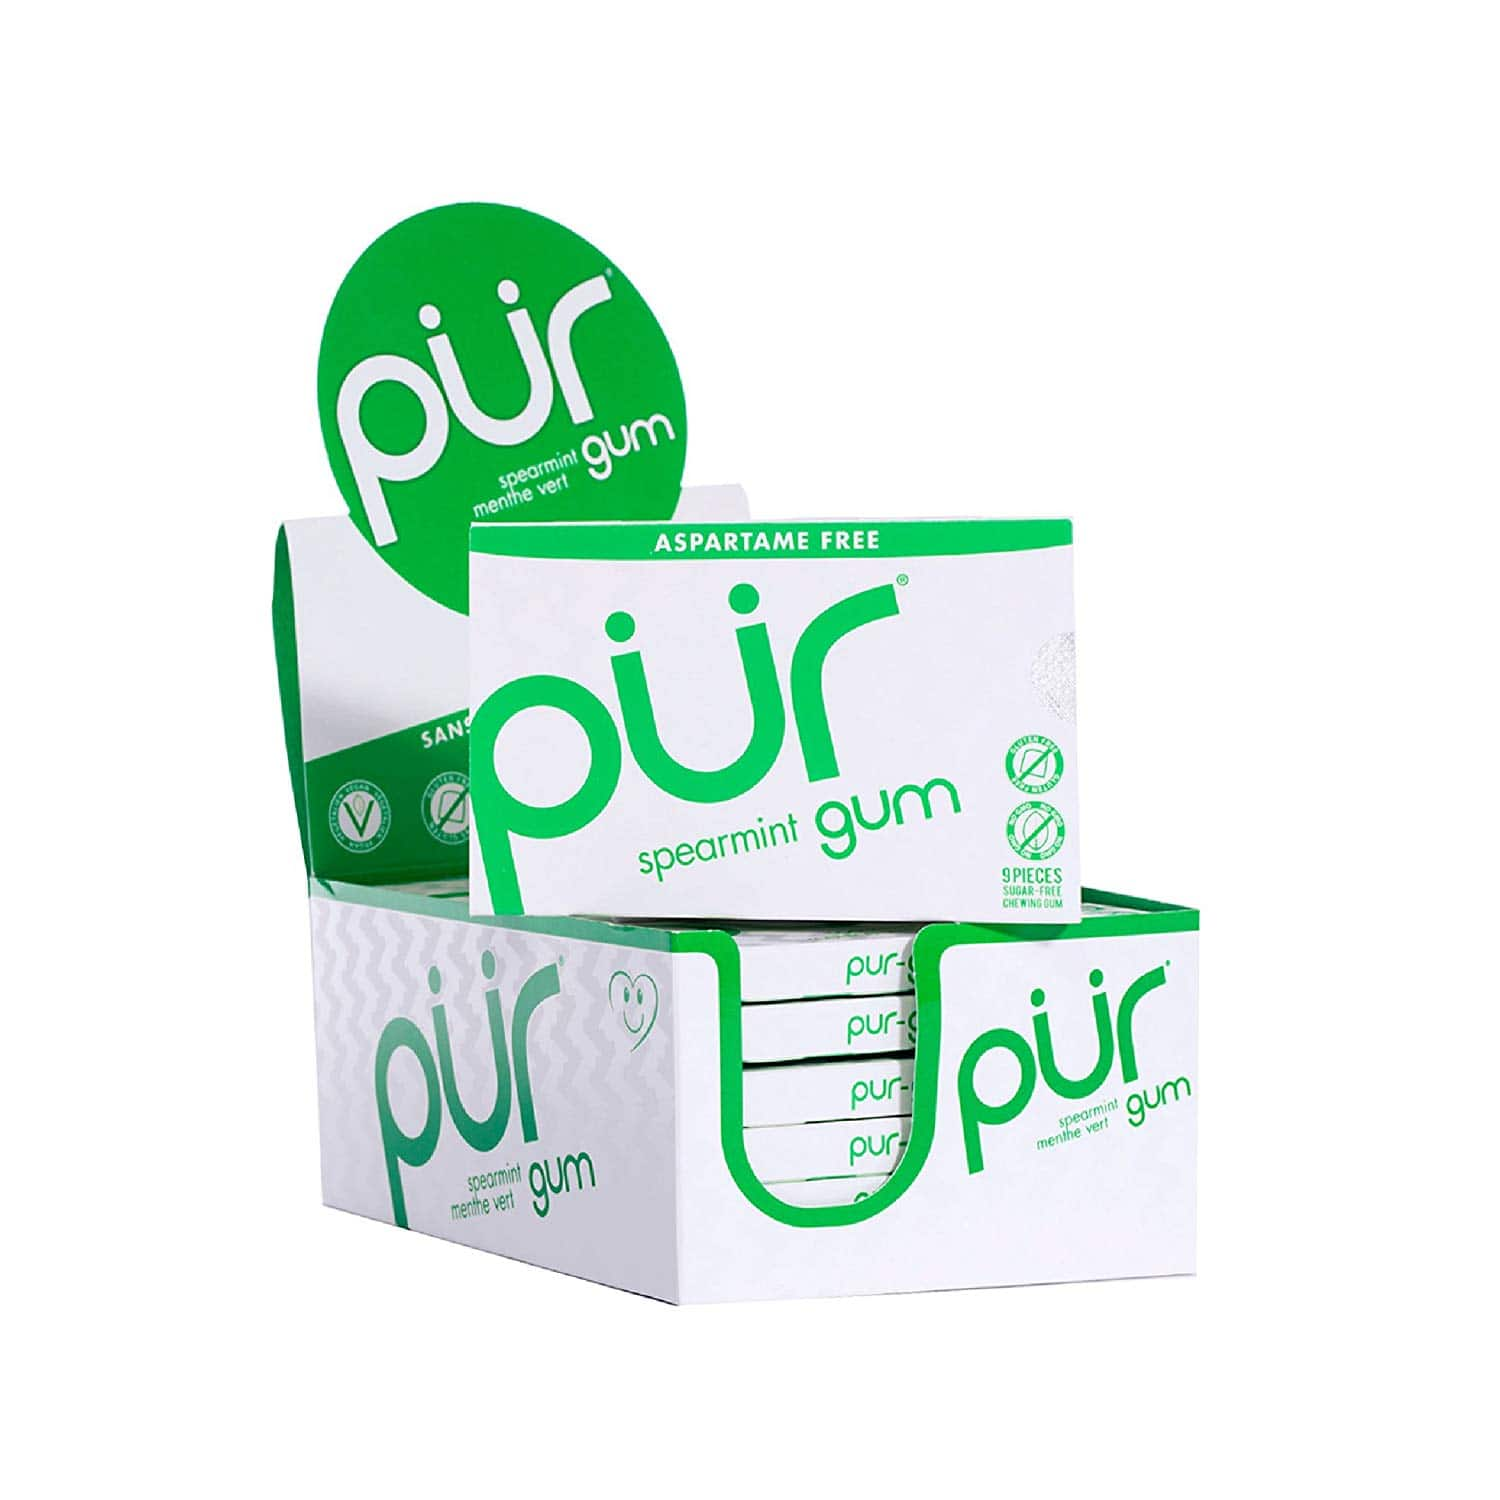 108-Count PUR 100% Xylitol Chewing Gum (Spearmint) $3.50